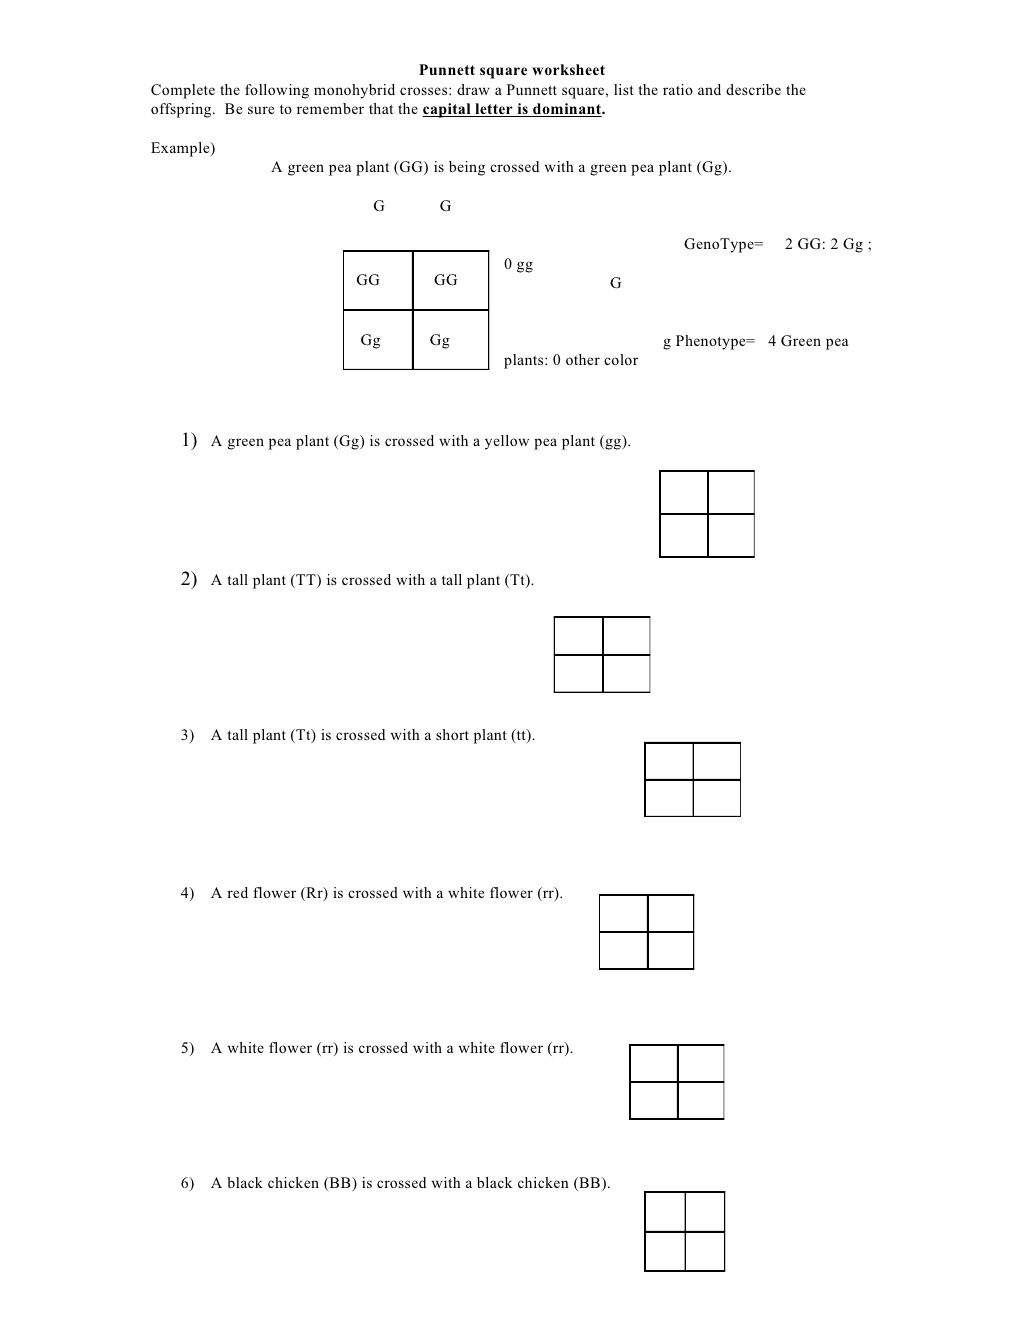 punnett square worksheet by kpolson via slideshare beauty tips pinterest worksheets and. Black Bedroom Furniture Sets. Home Design Ideas